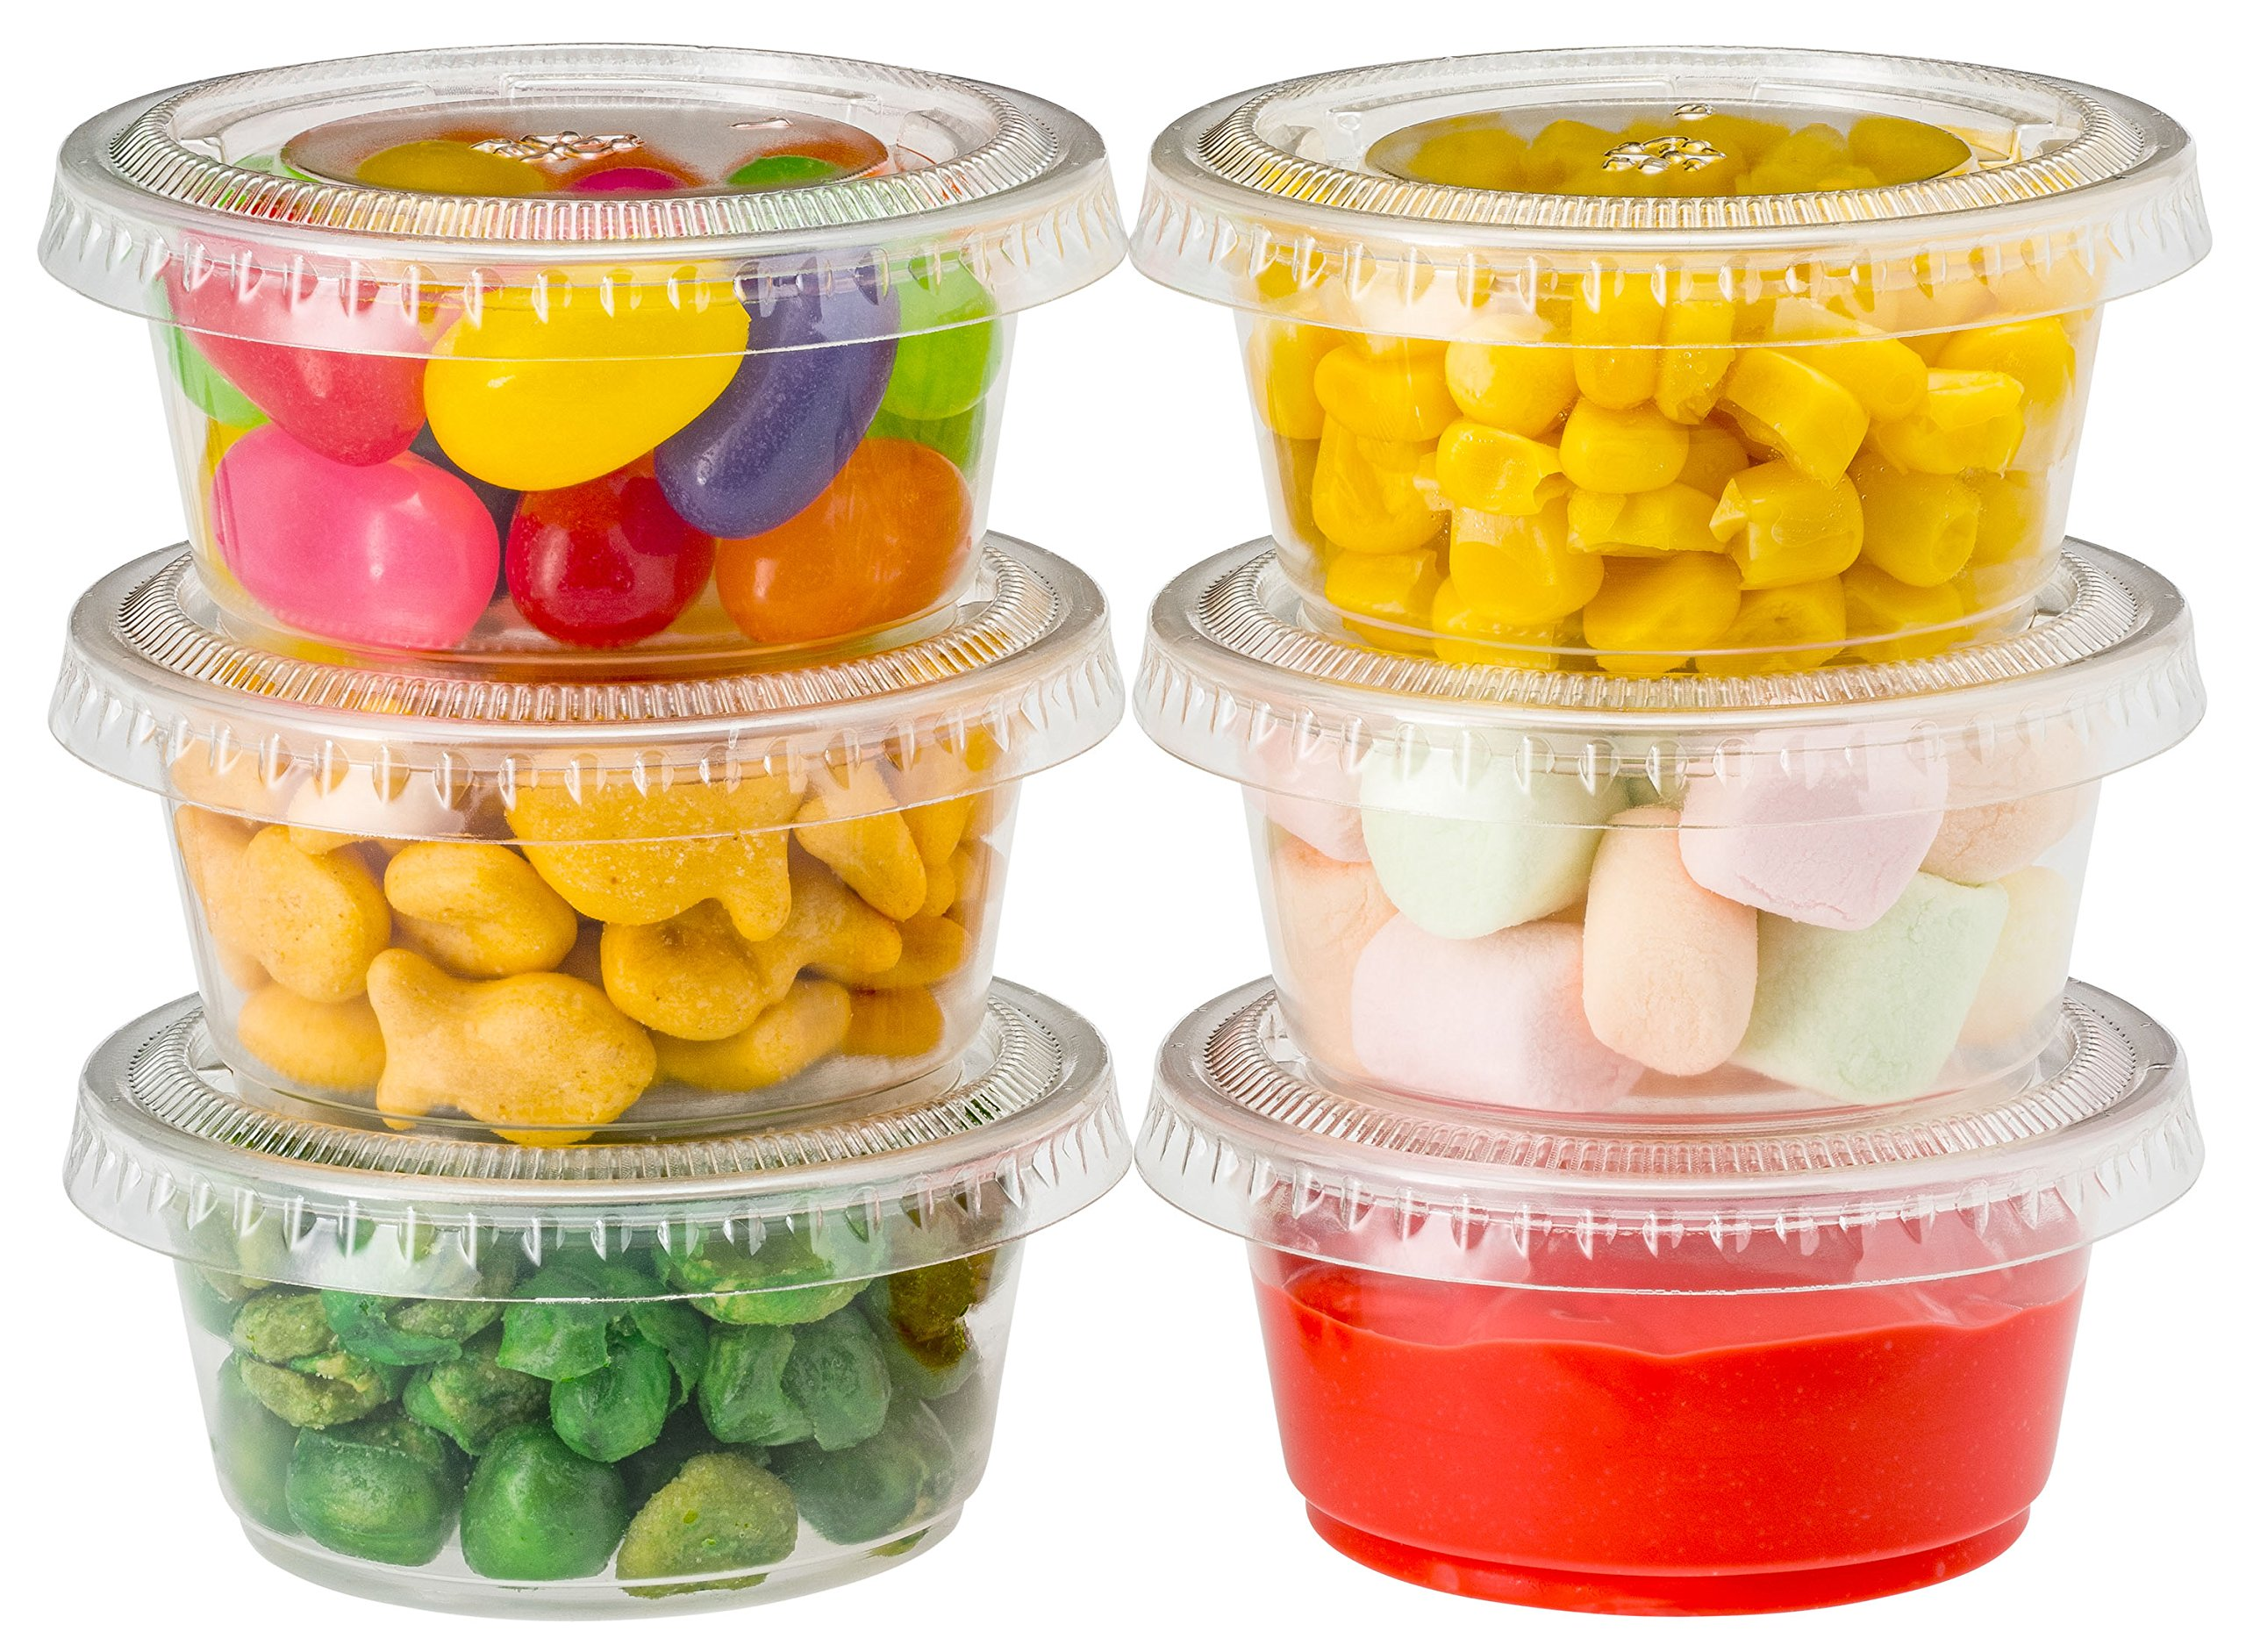 Plastic Portion Cups with Lids 2 oz. 150 Pack Condiment Sauce Snack Souffle Dressing, Jello Shot Cup Containers, BPA free - by DuraHome by DuraHome (Image #5)